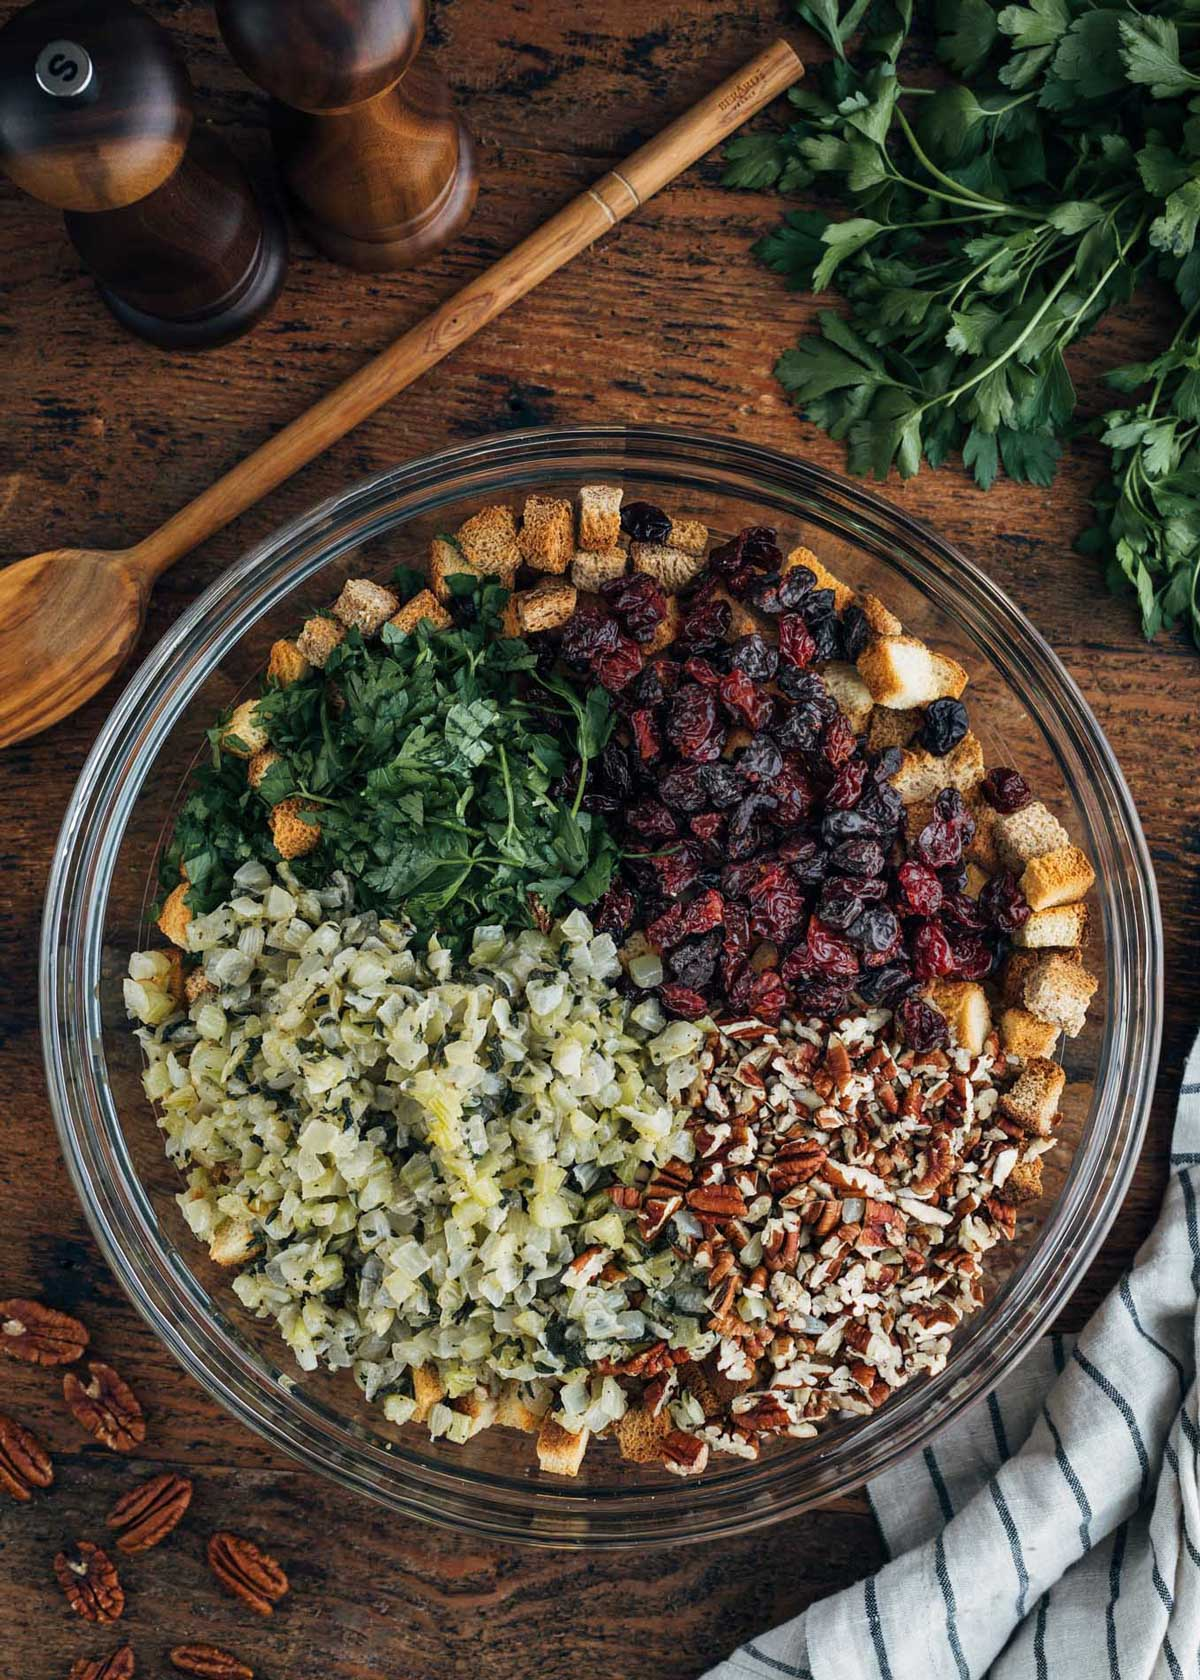 dried cranberries, pecans, croutons, and sauteed onions and celery in a large glass bowl